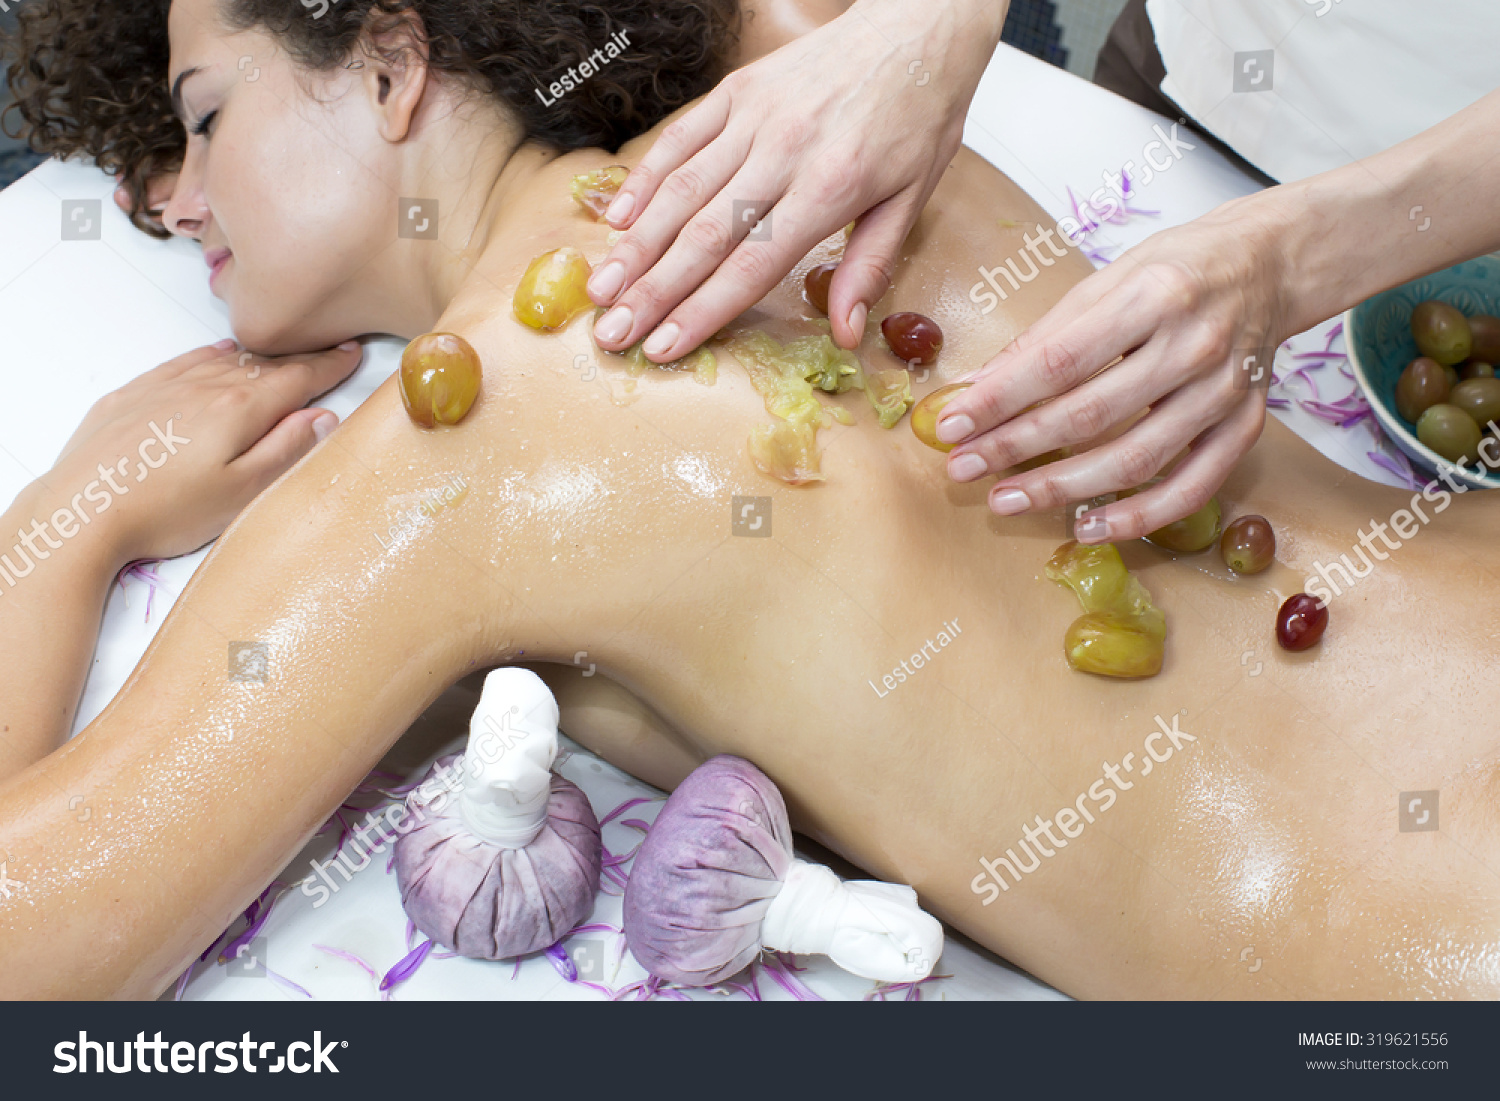 beauty spa datingsite